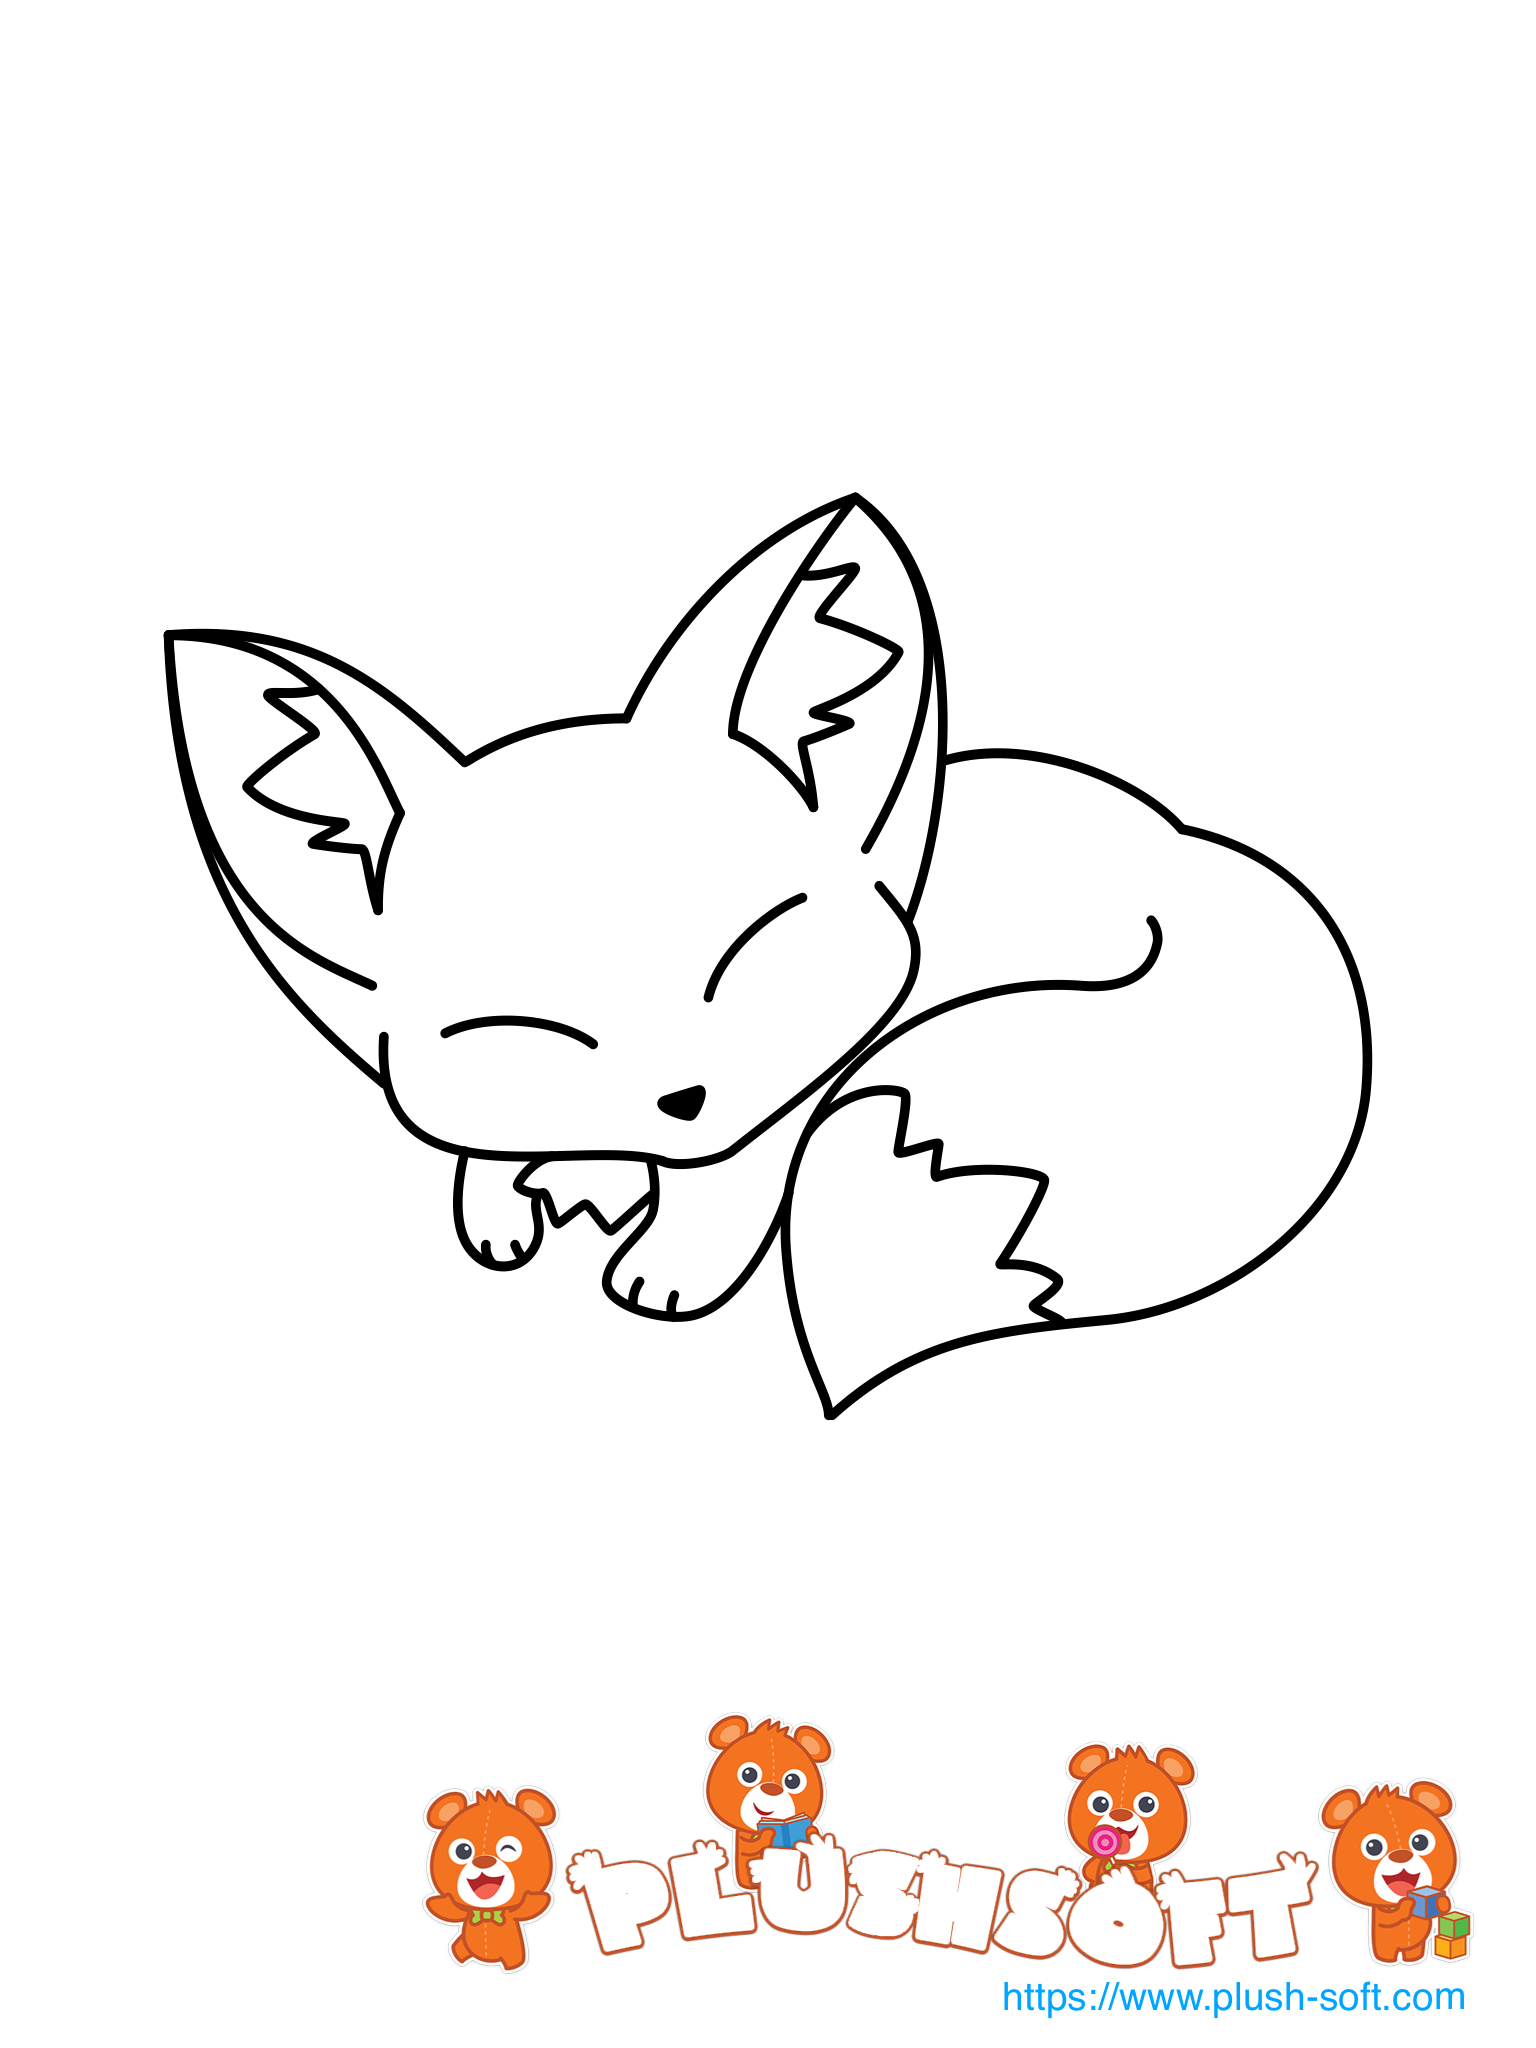 Printable Coloring Page A Cute Fox For Your Toddler To Color Subscribe For A New Coloring Page Every Da Fox Coloring Page Cute Coloring Pages Coloring Pages